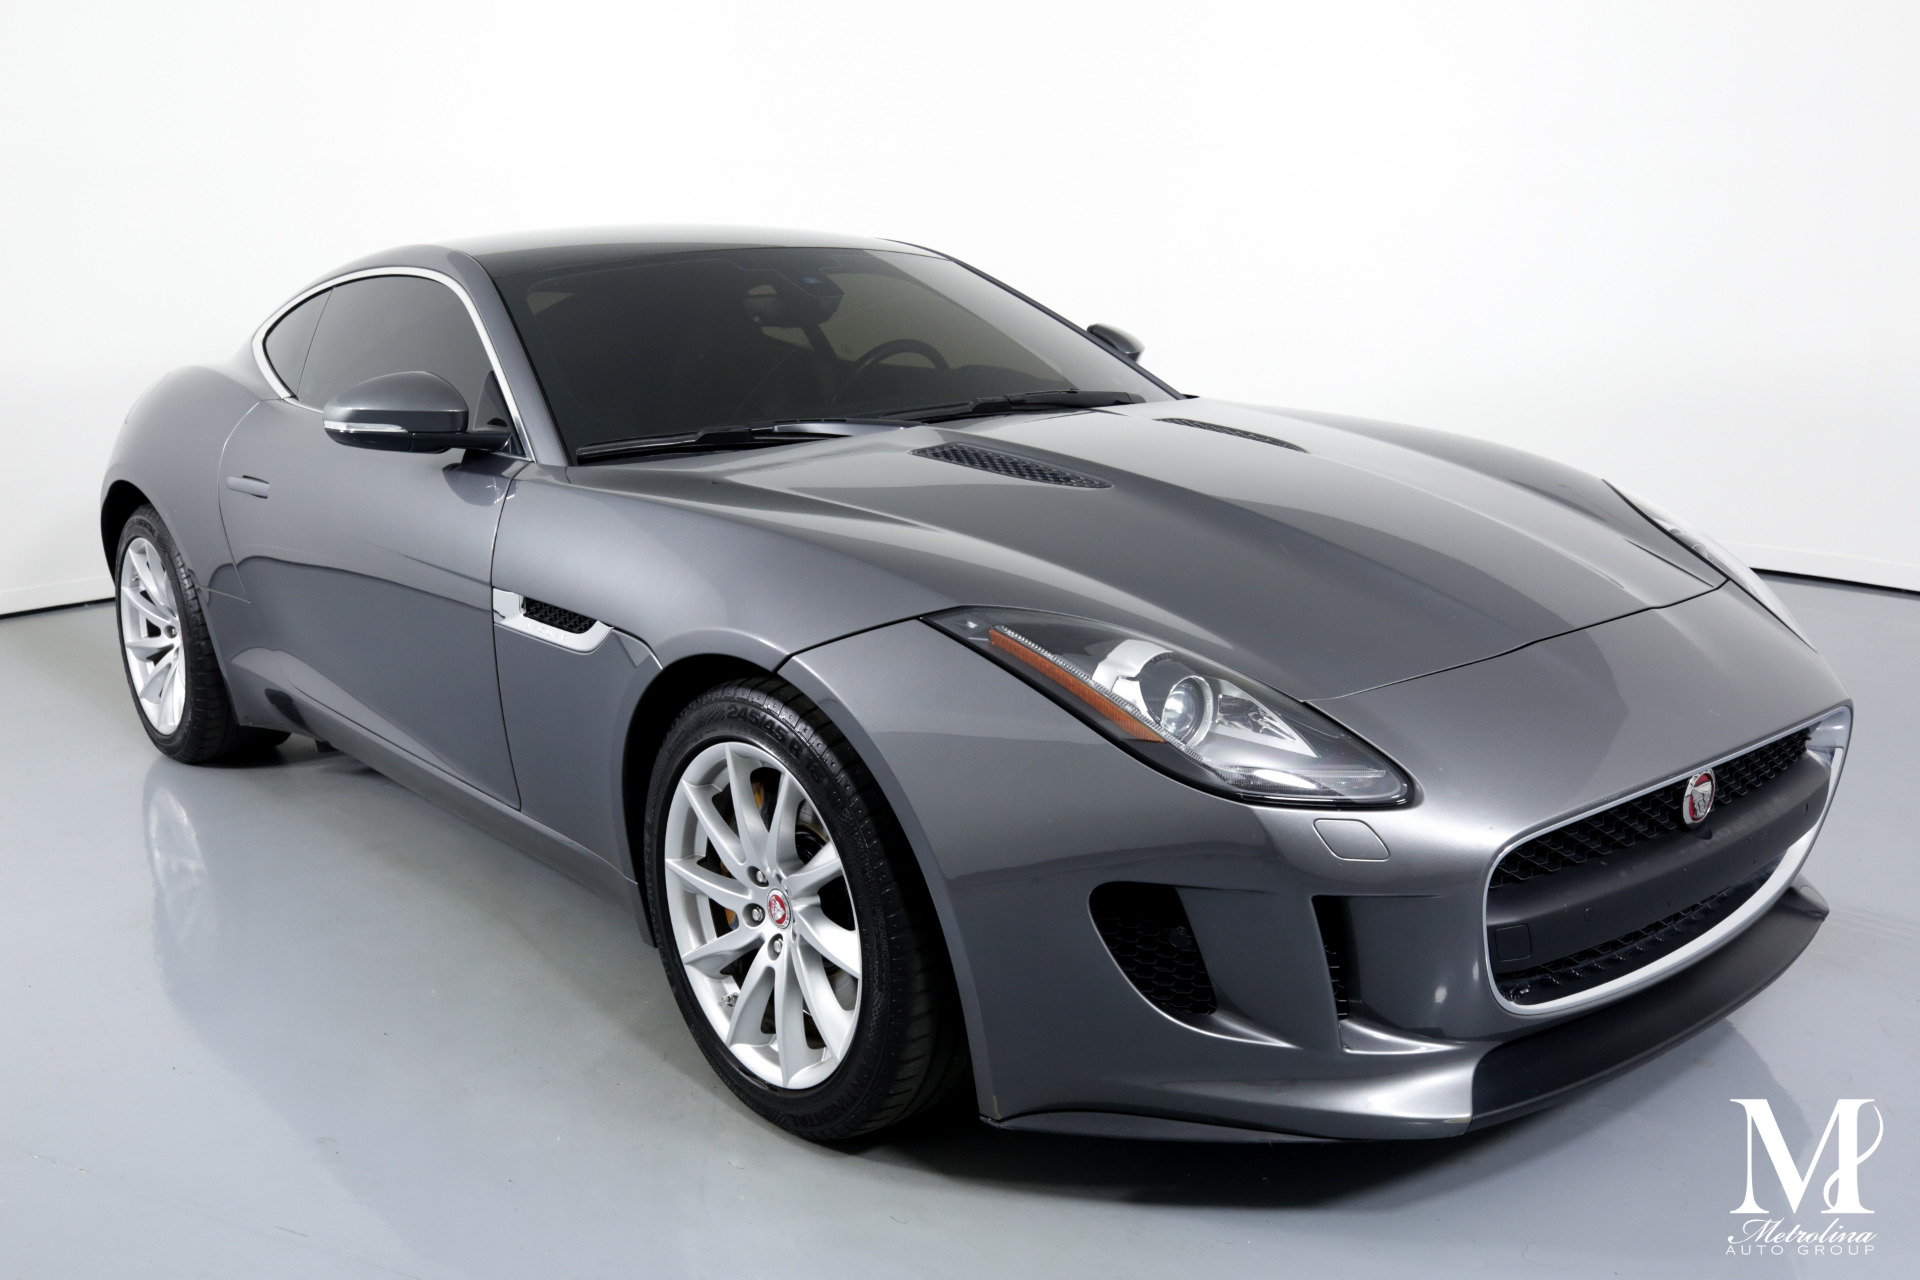 Used 2016 Jaguar F-TYPE for sale $29,996 at Metrolina Auto Group in Charlotte NC 28217 - 2